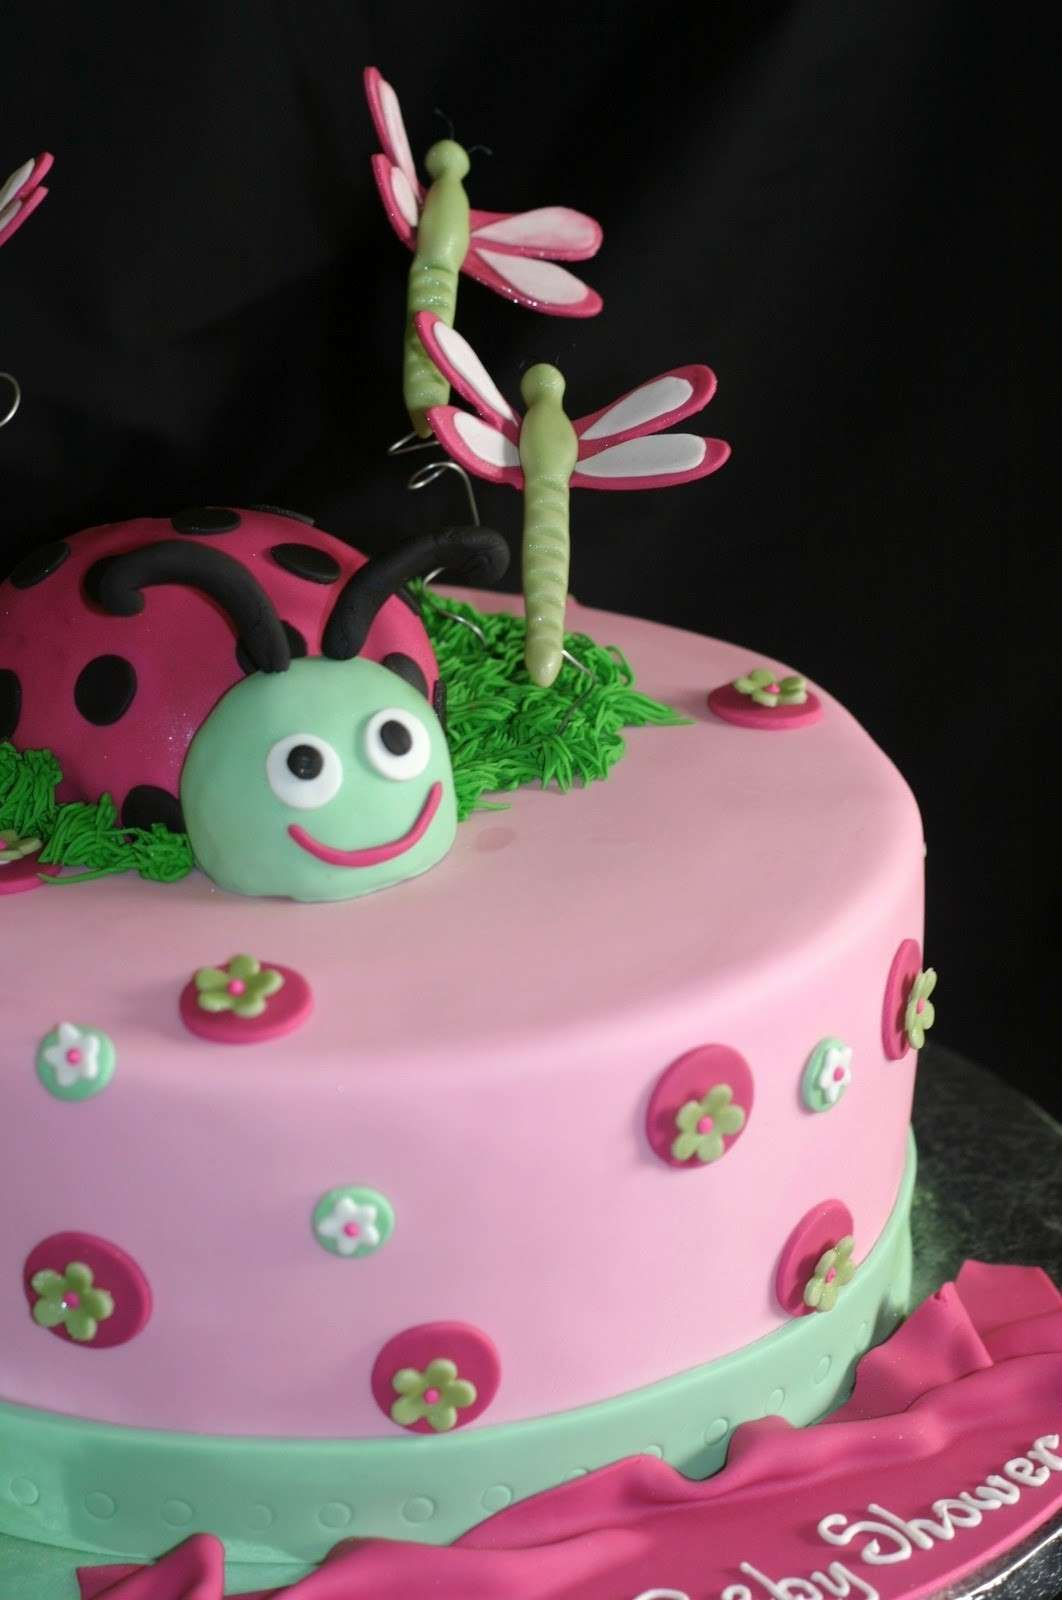 Come decorare le torte foto 6 40 ricette pourfemme for Decorazioni torte ladybug